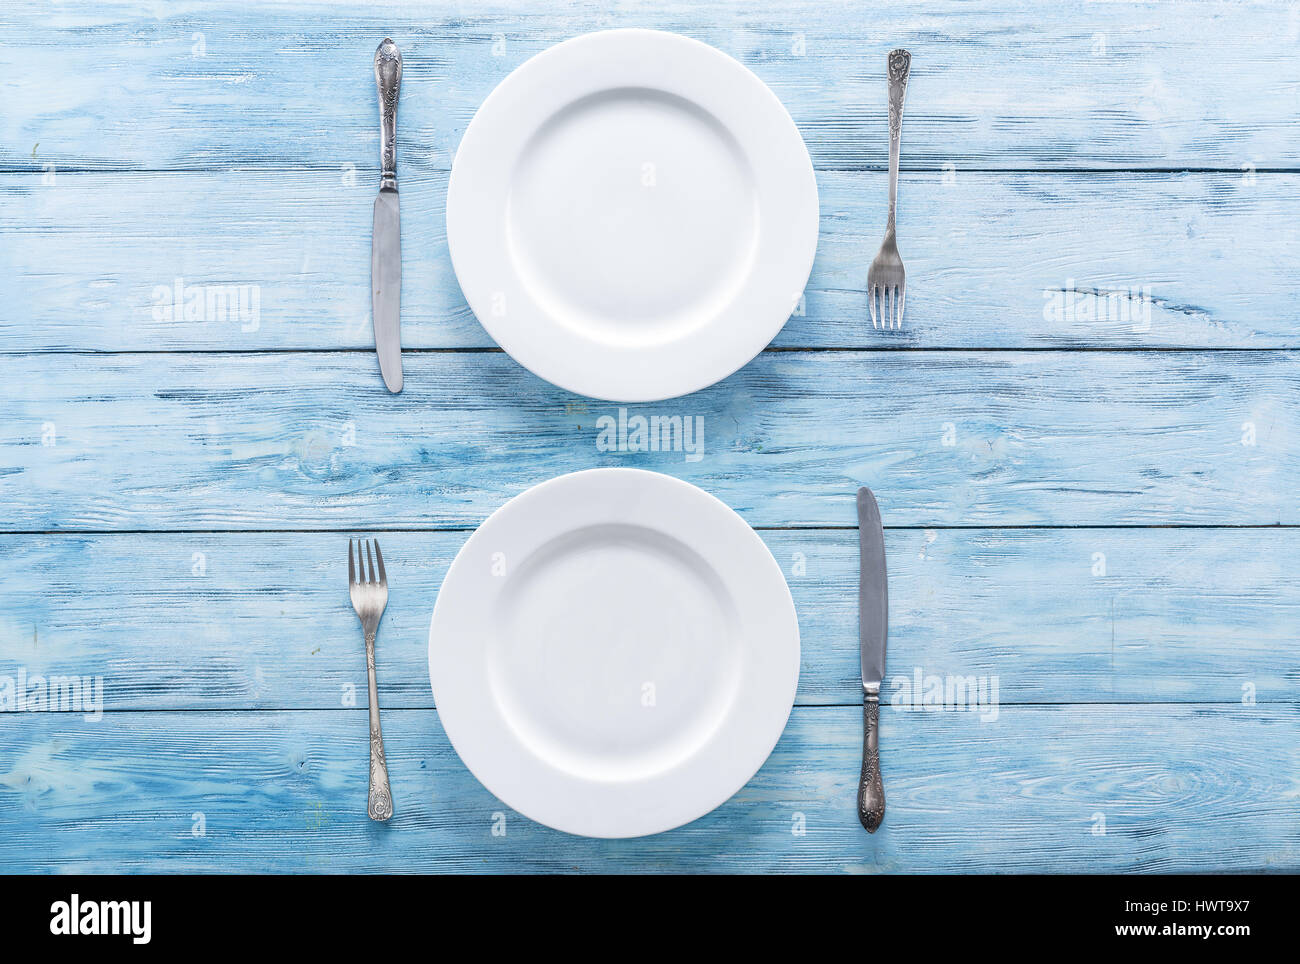 Two white empty plates and cutlery on blue table. Top view. - Stock Image